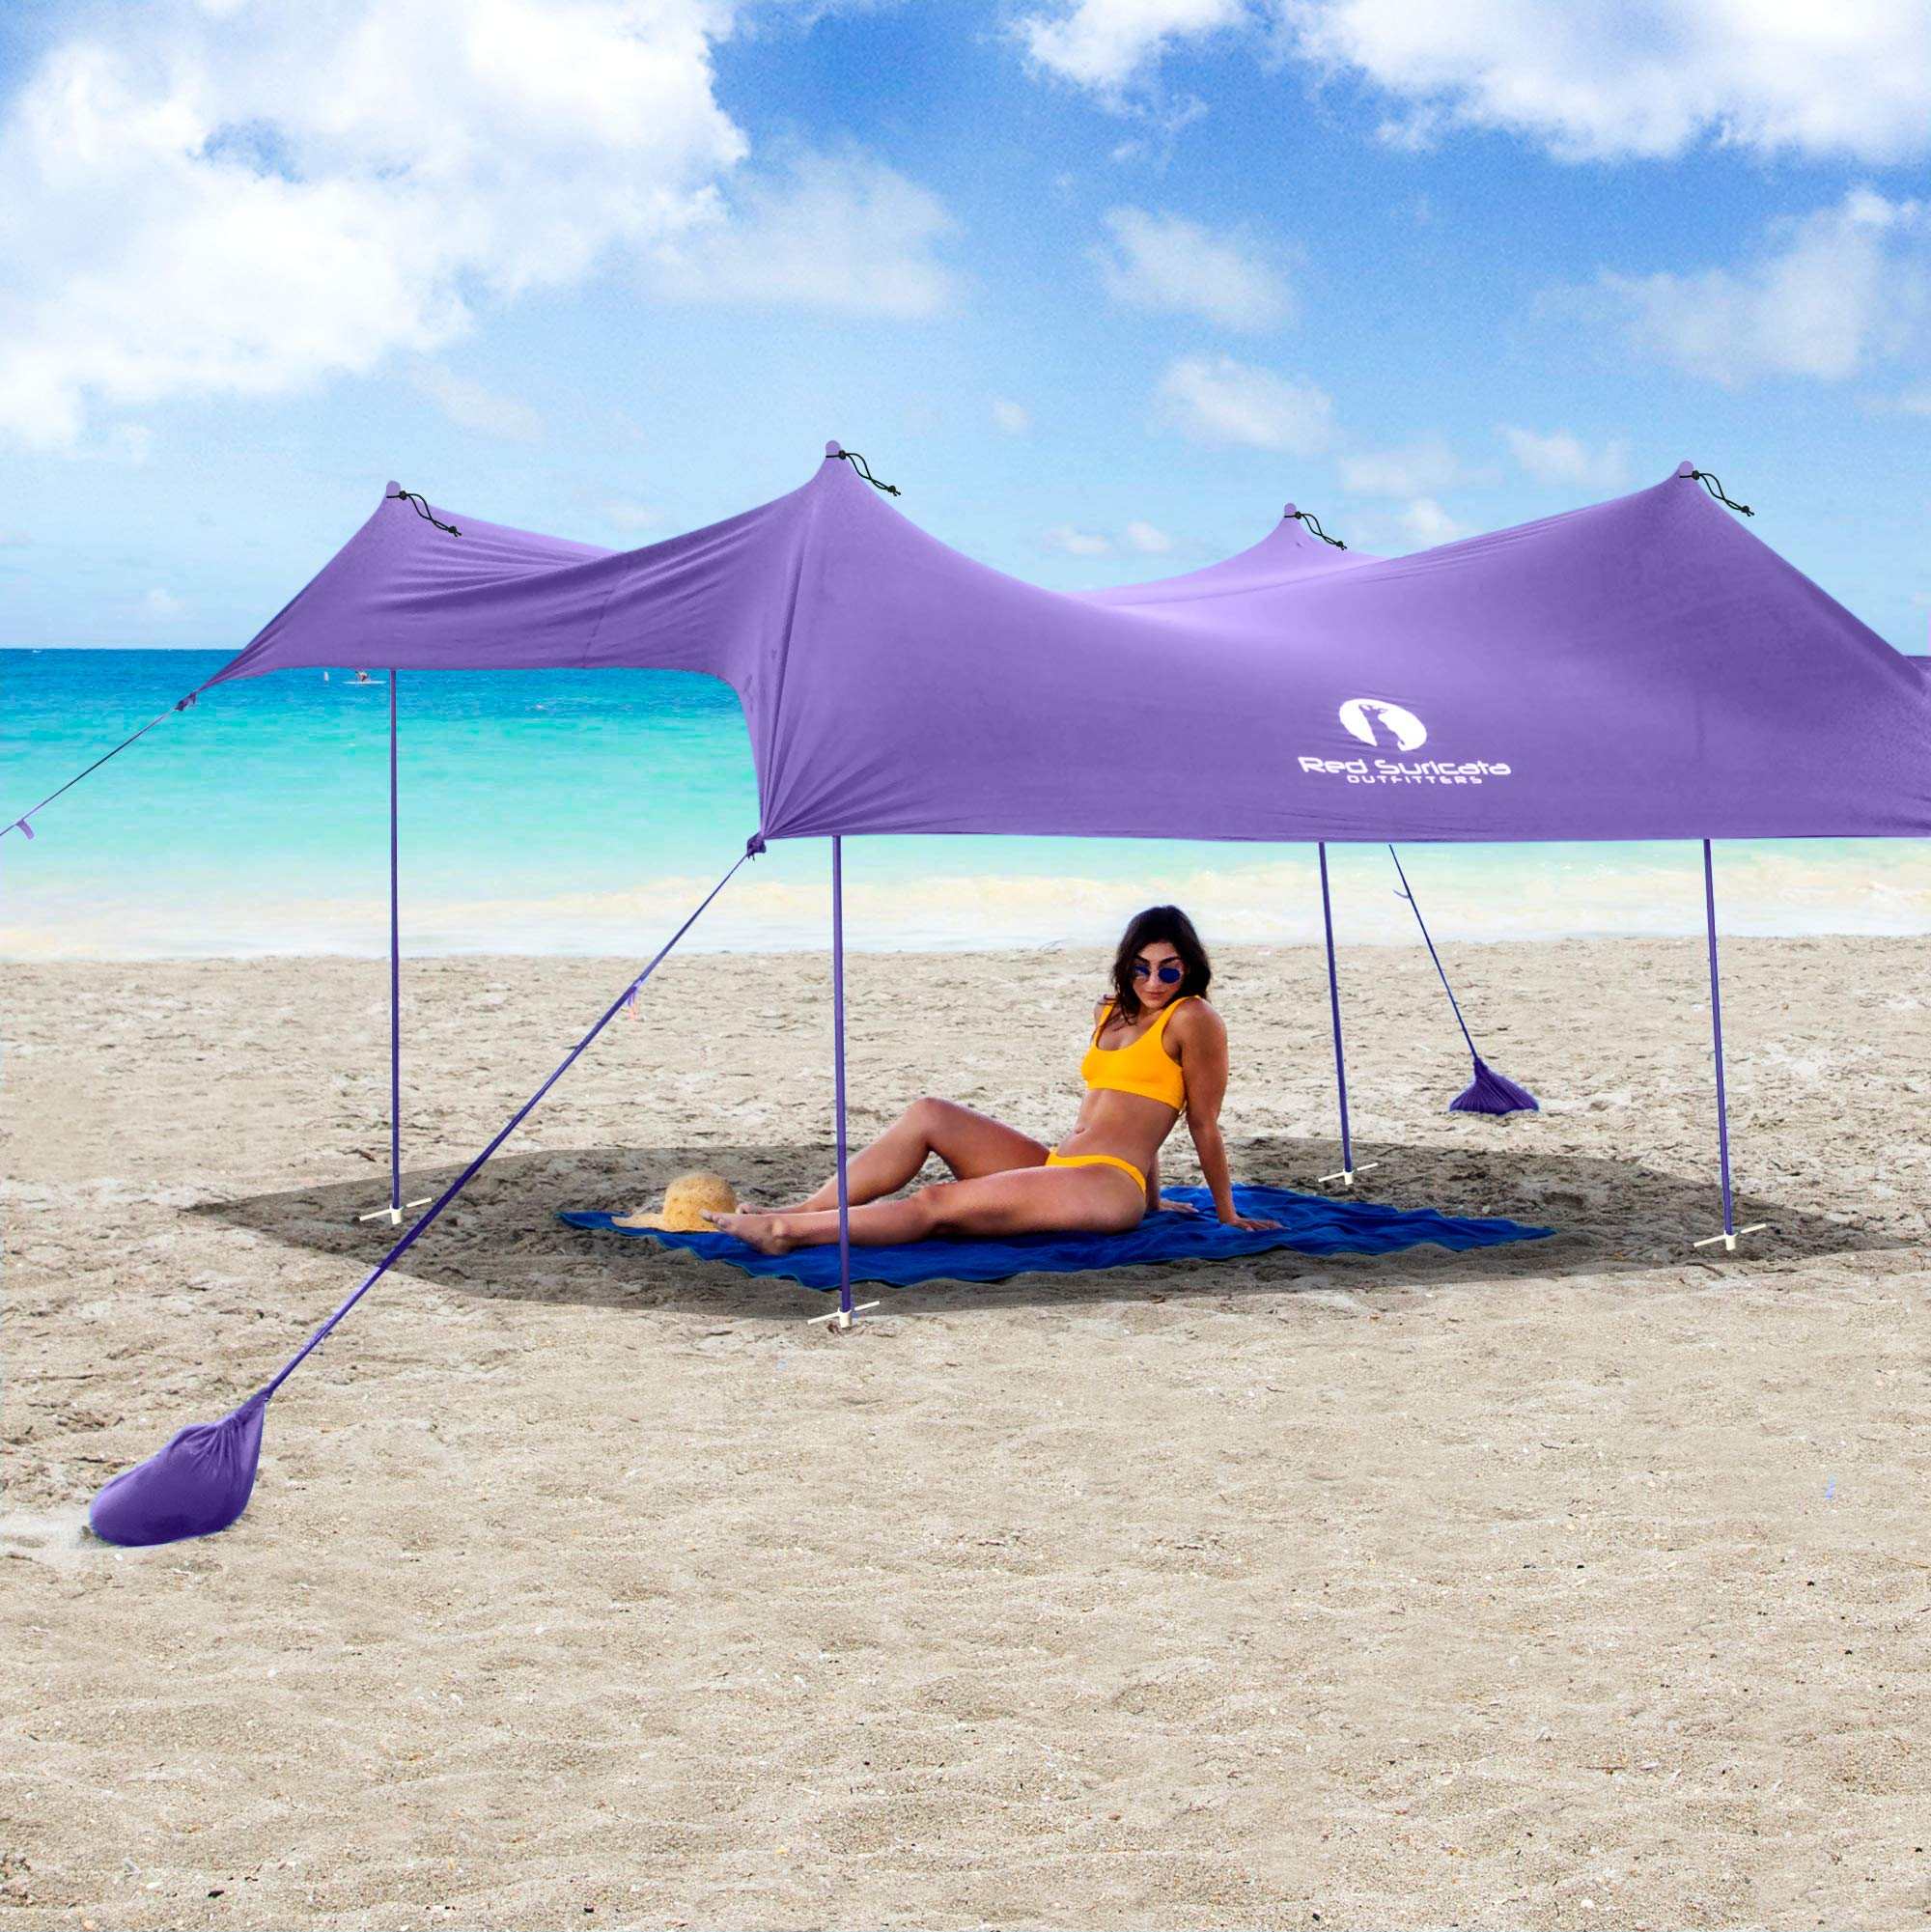 Red Suricata Family Beach Sunshade - Sun Shade Canopy | UPF50 UV Protection | Tent with 4 Aluminum Poles, 4 Pole Anchors, 4 Sandbag Anchors | Large & Portable Shelter Tarp (Purple, Medium) by Red Suricata